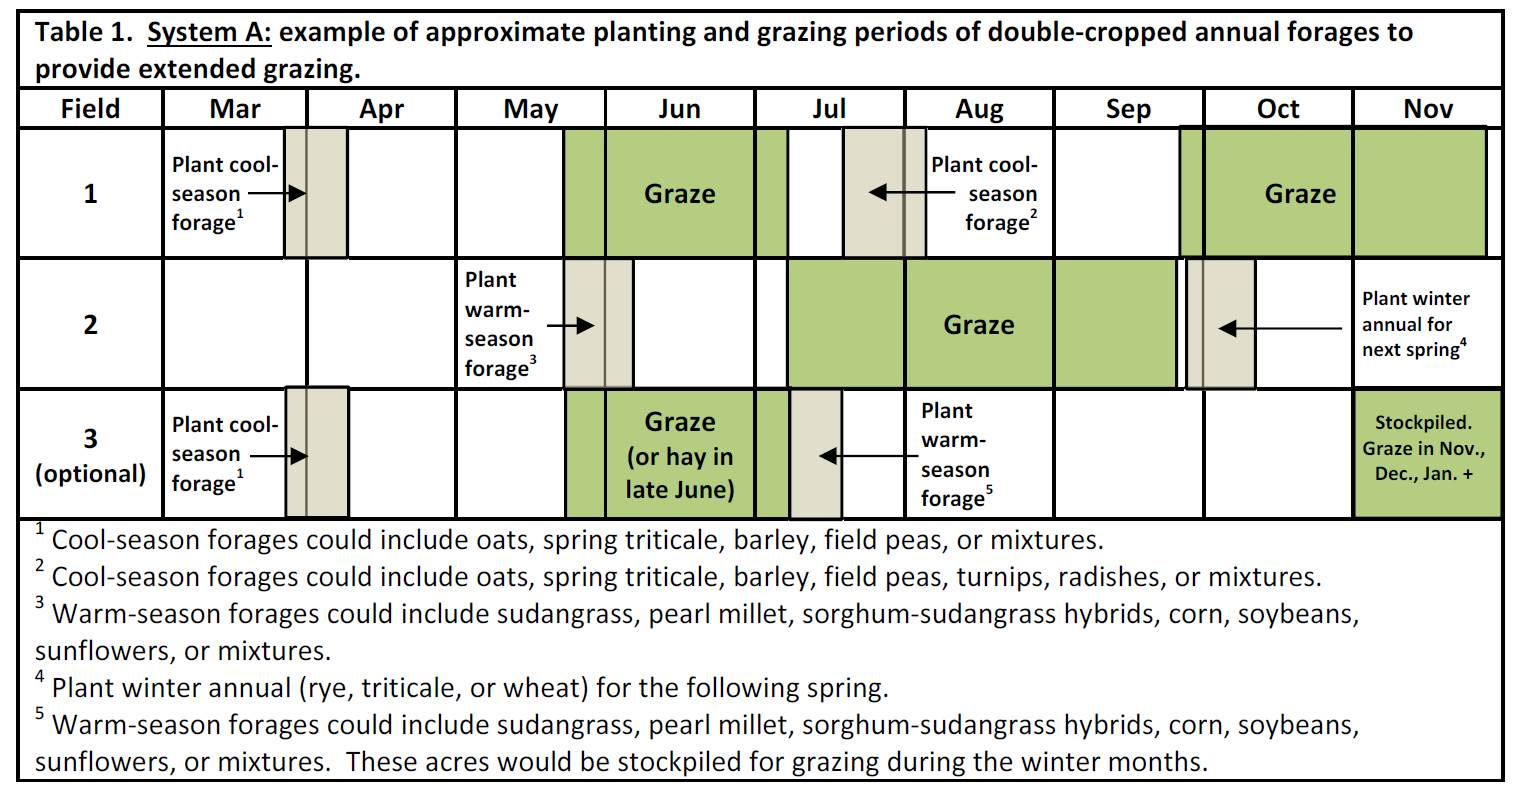 Table 1 showing a suggested timeline for planting of cool- and warm-season annual forages